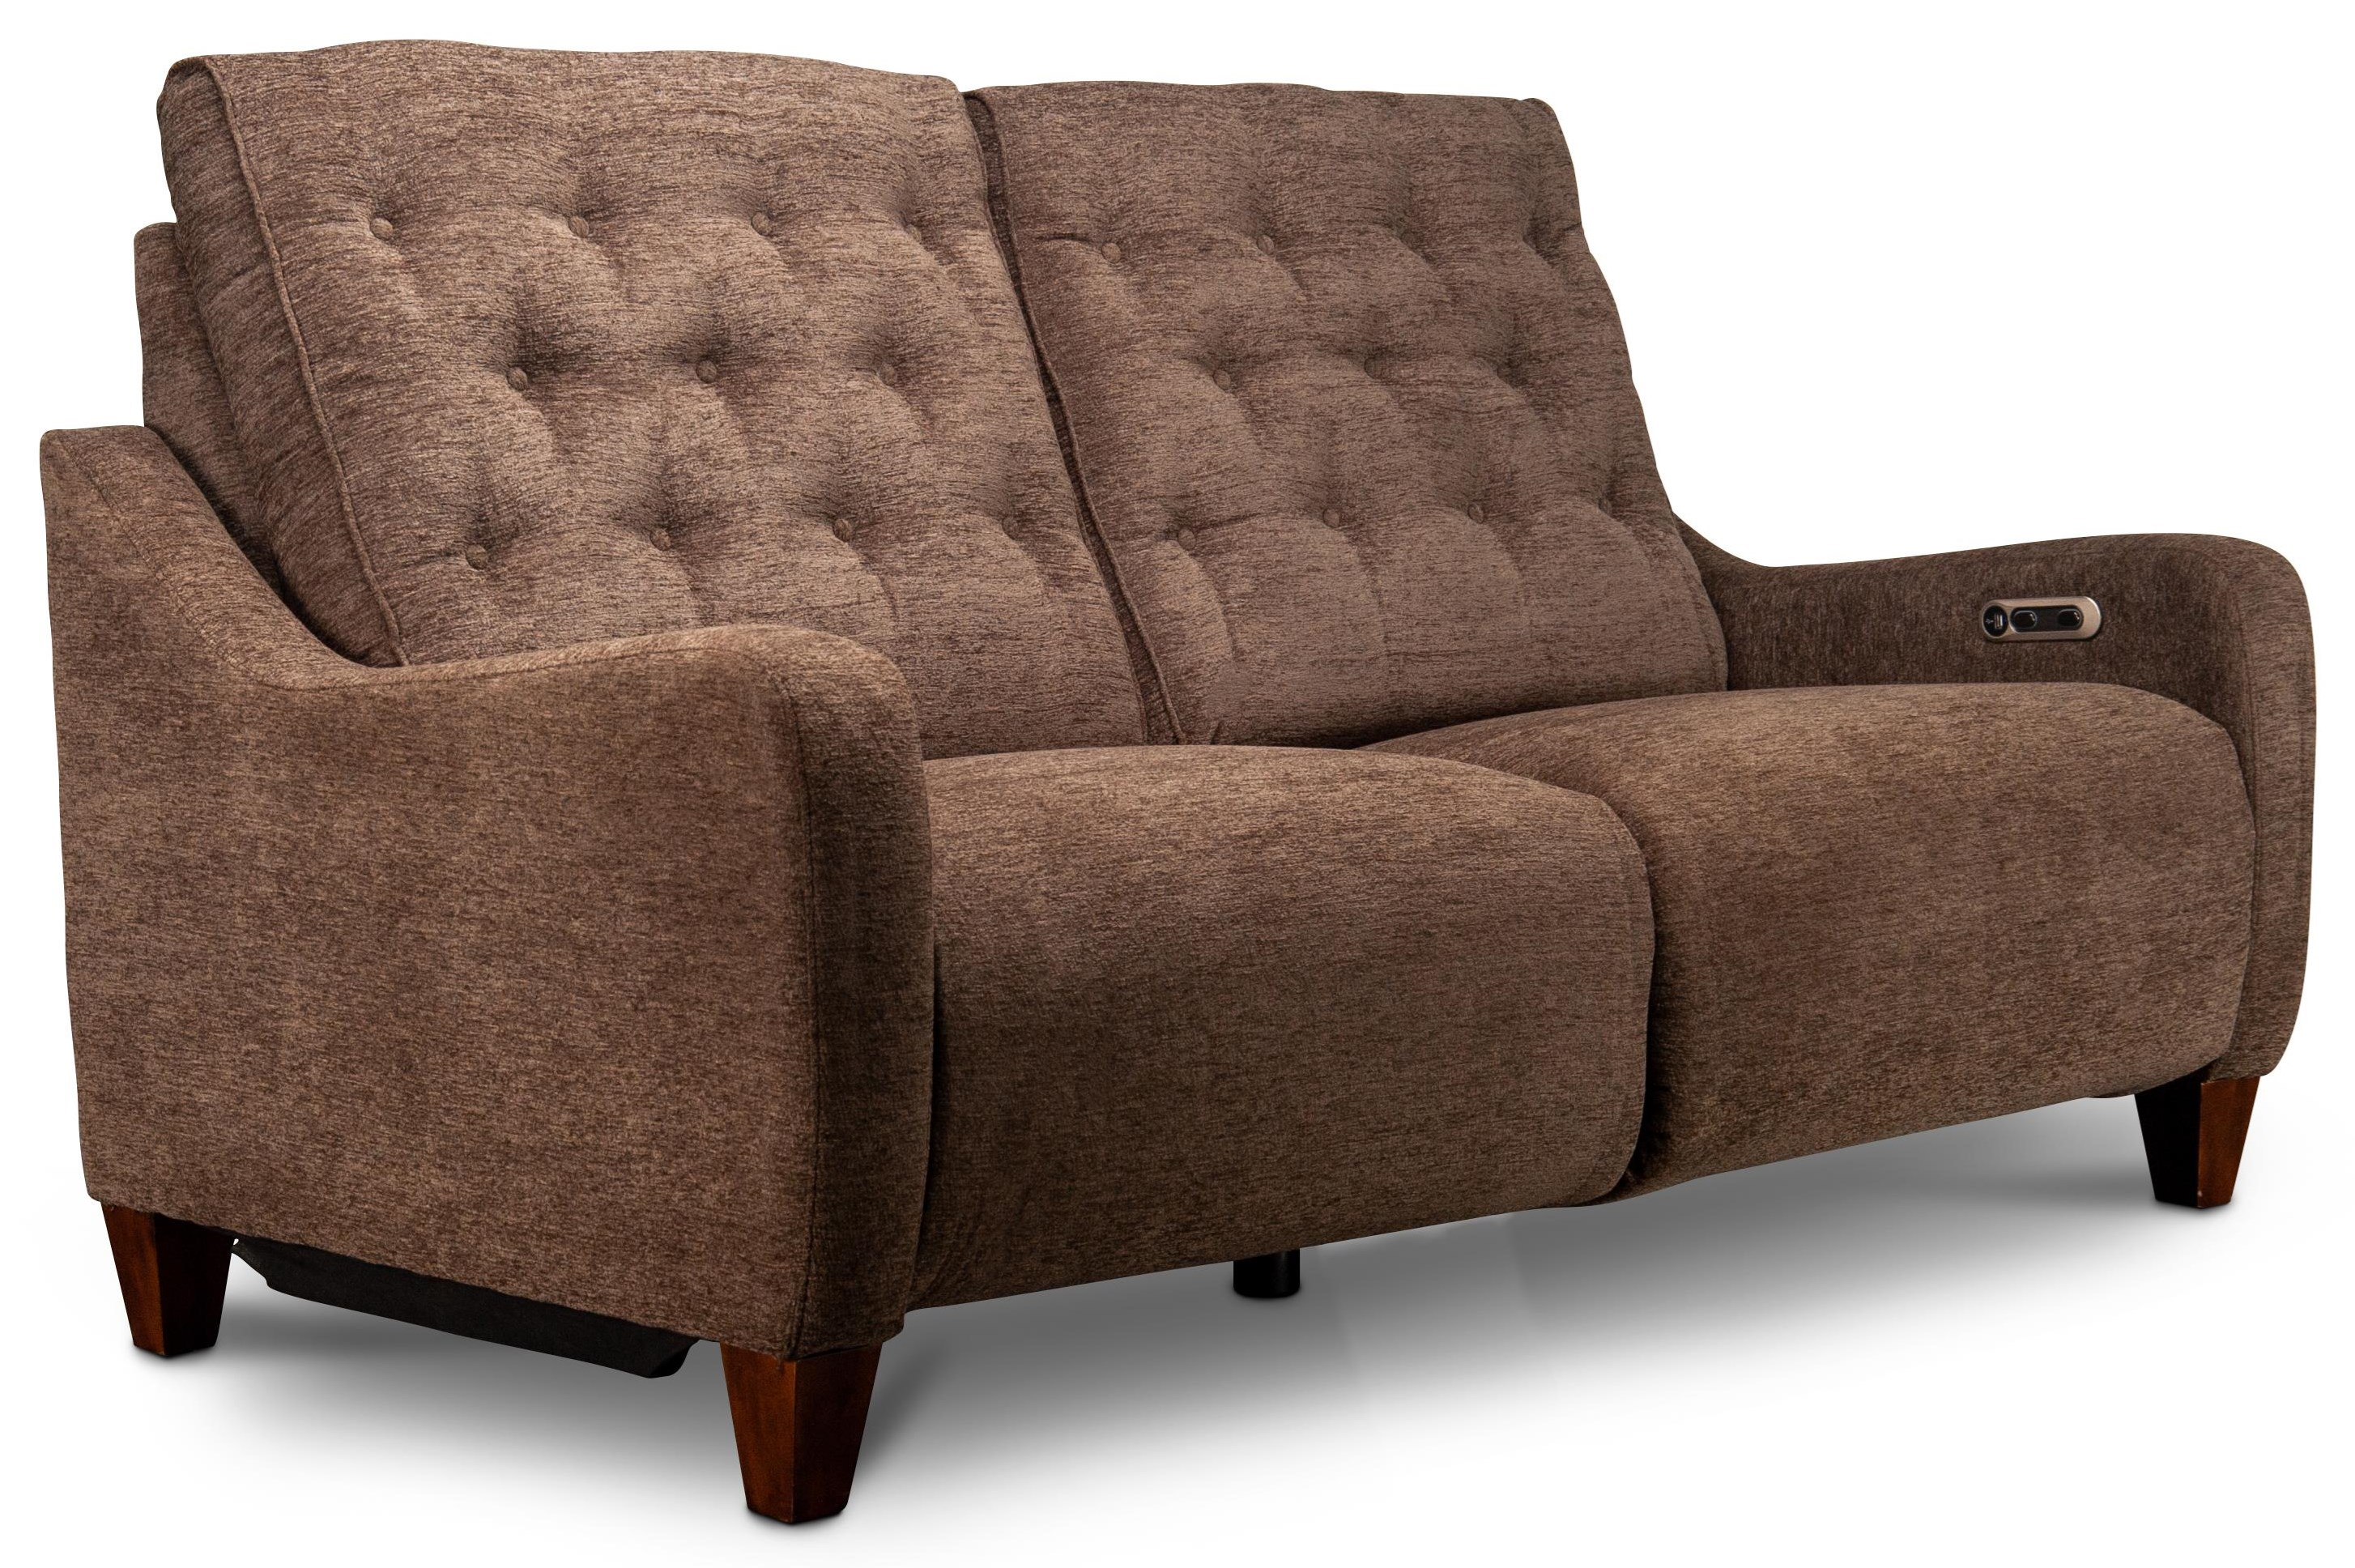 Catalina Catalina Power Reclining Loveseat by Parker House at Morris Home